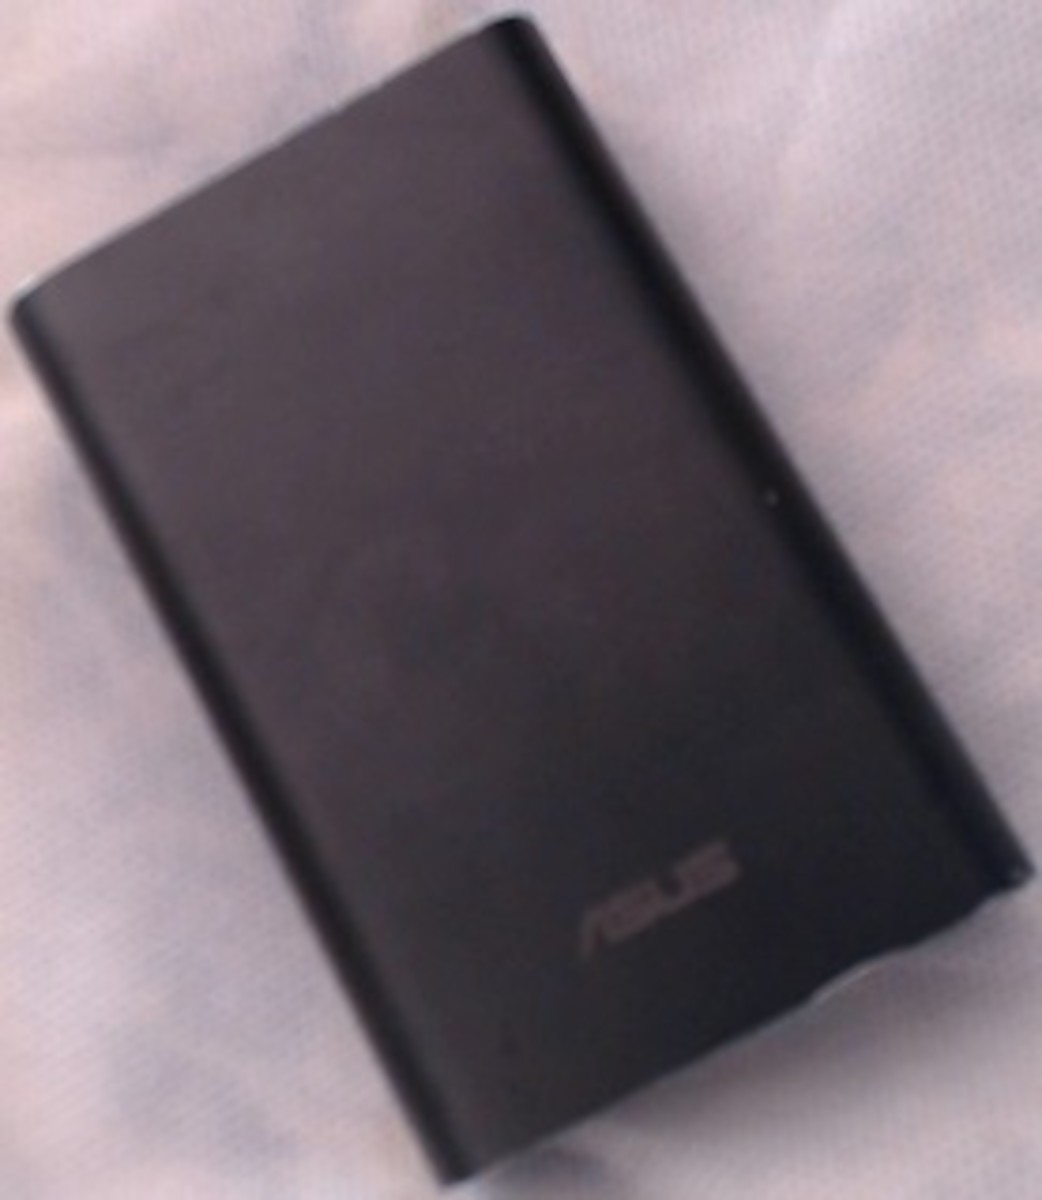 An Asus power bank (Zenpower). These devices can be used to charge your phone when you are out of home. With Asus Zenfone Max and its incredible battery, you no longer need to carry one of them with you